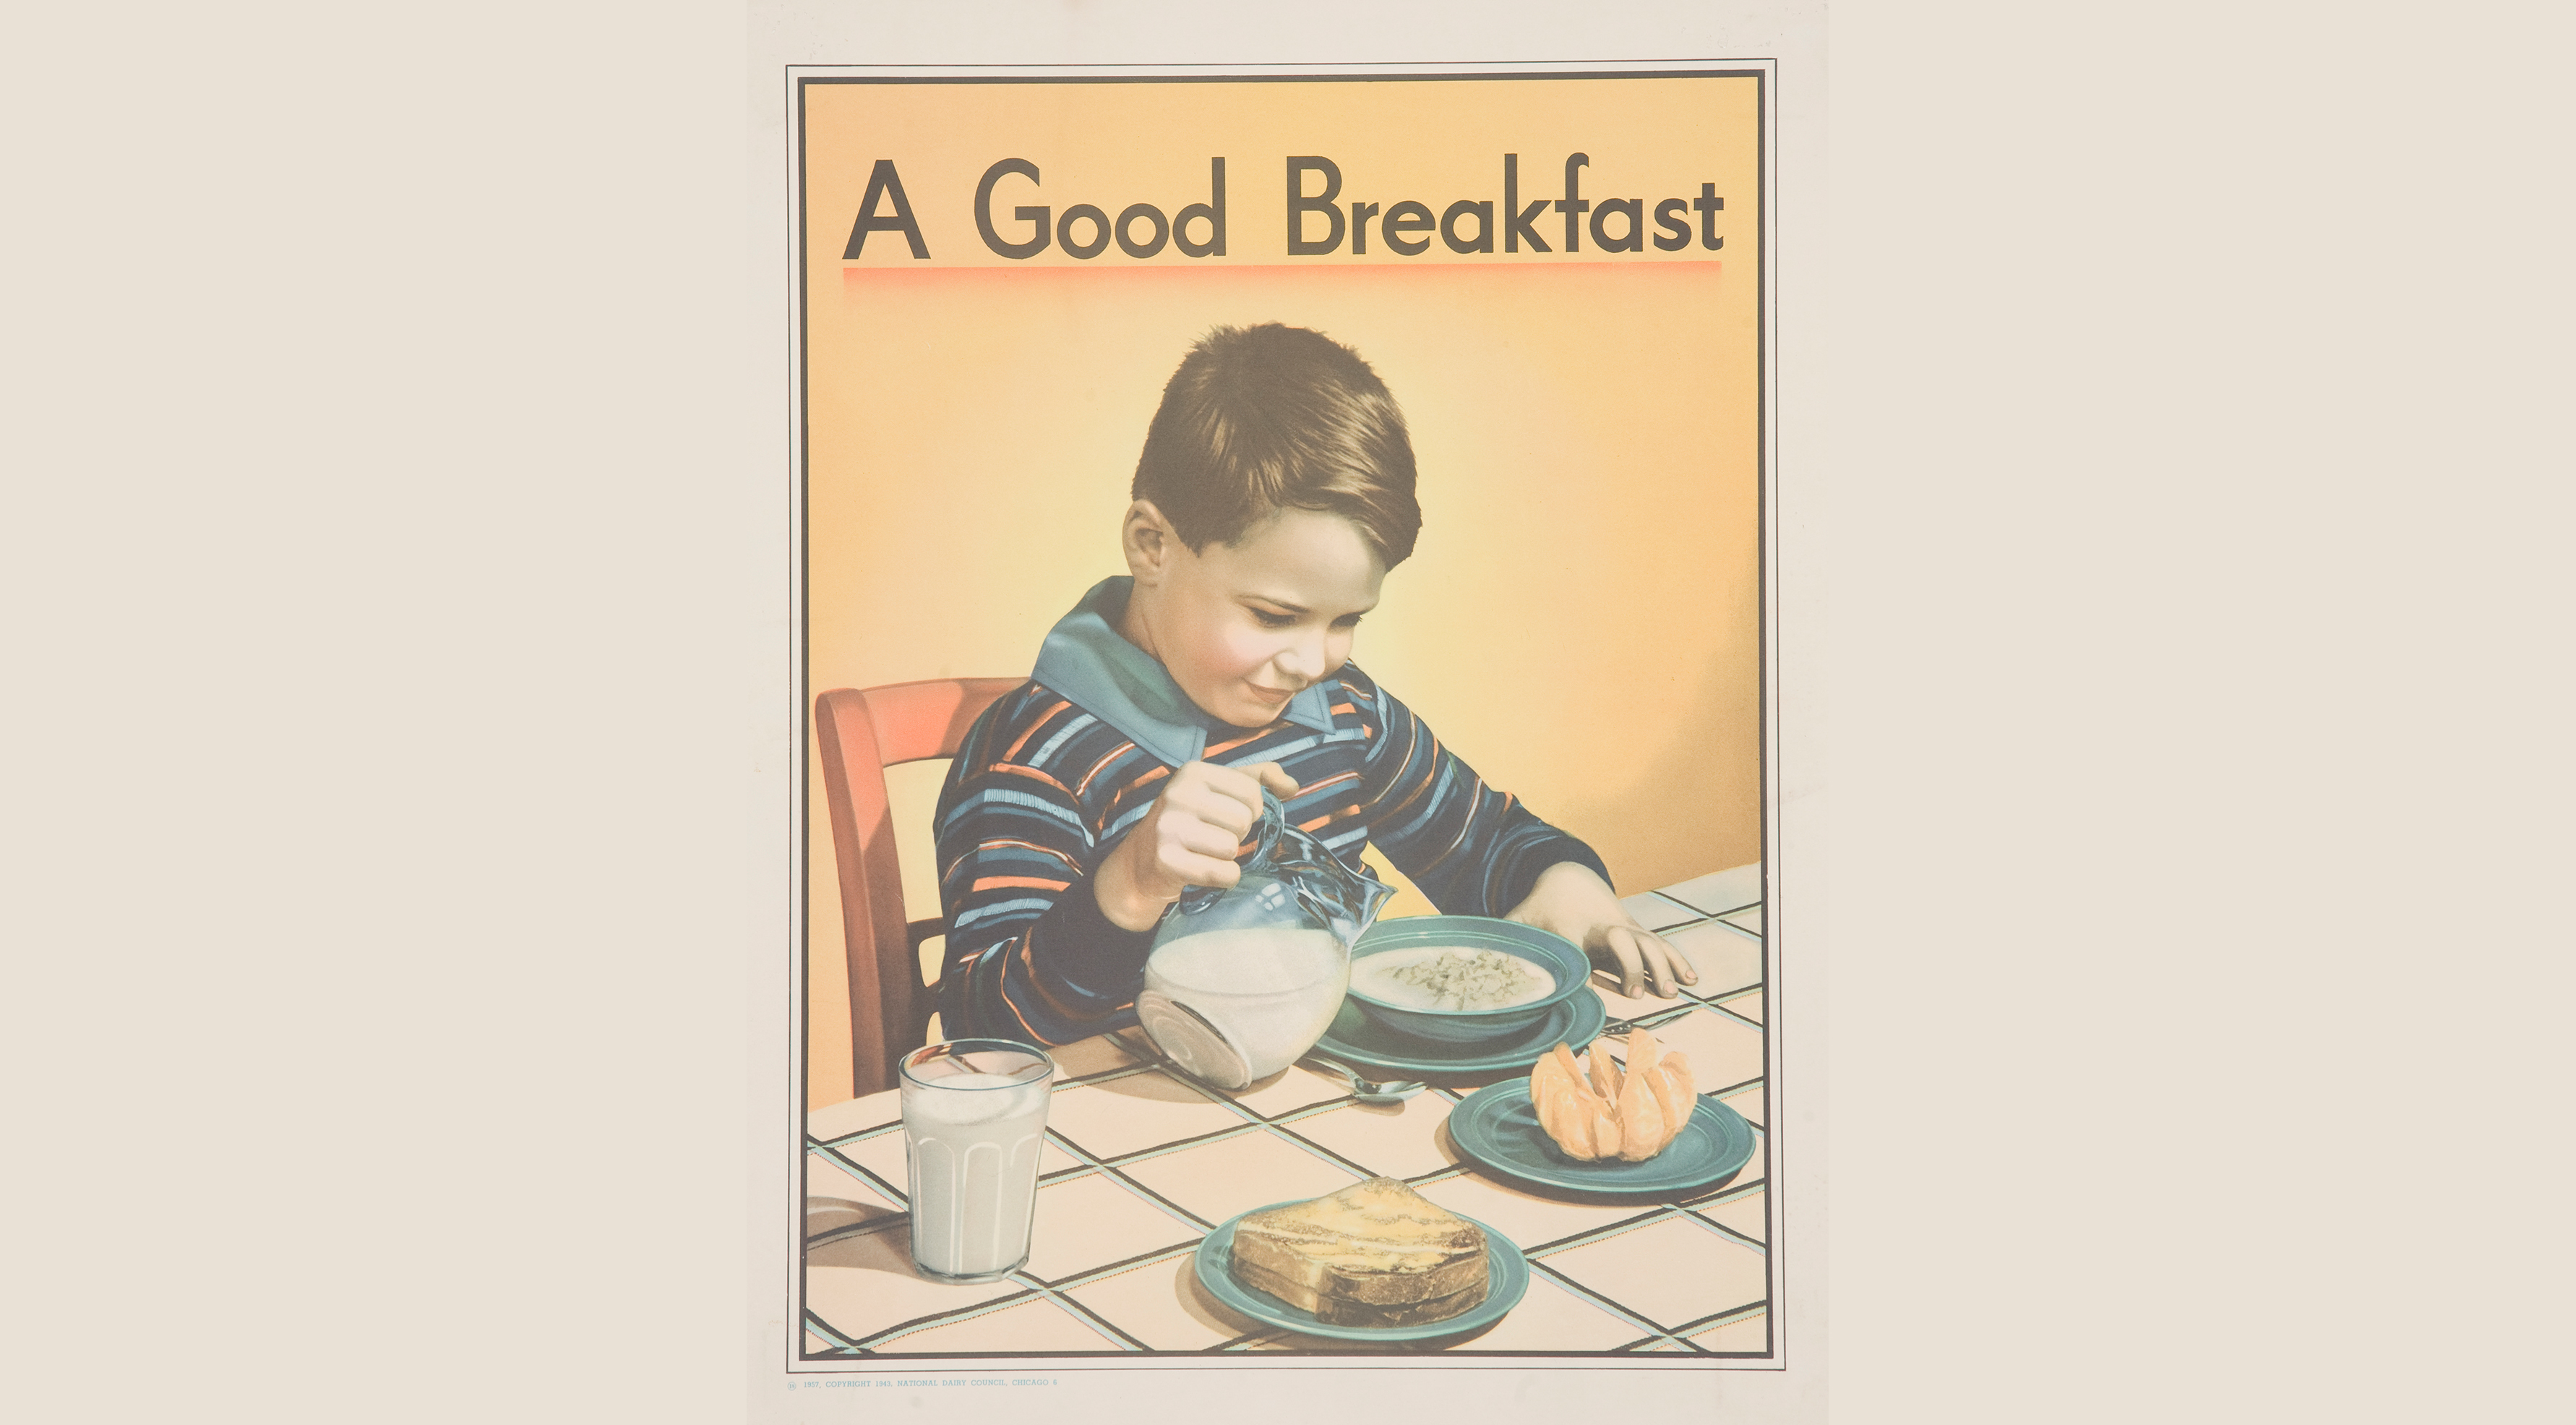 Breakfast Backtrack: Maybe Skipping The Morning Meal Isn't So Bad